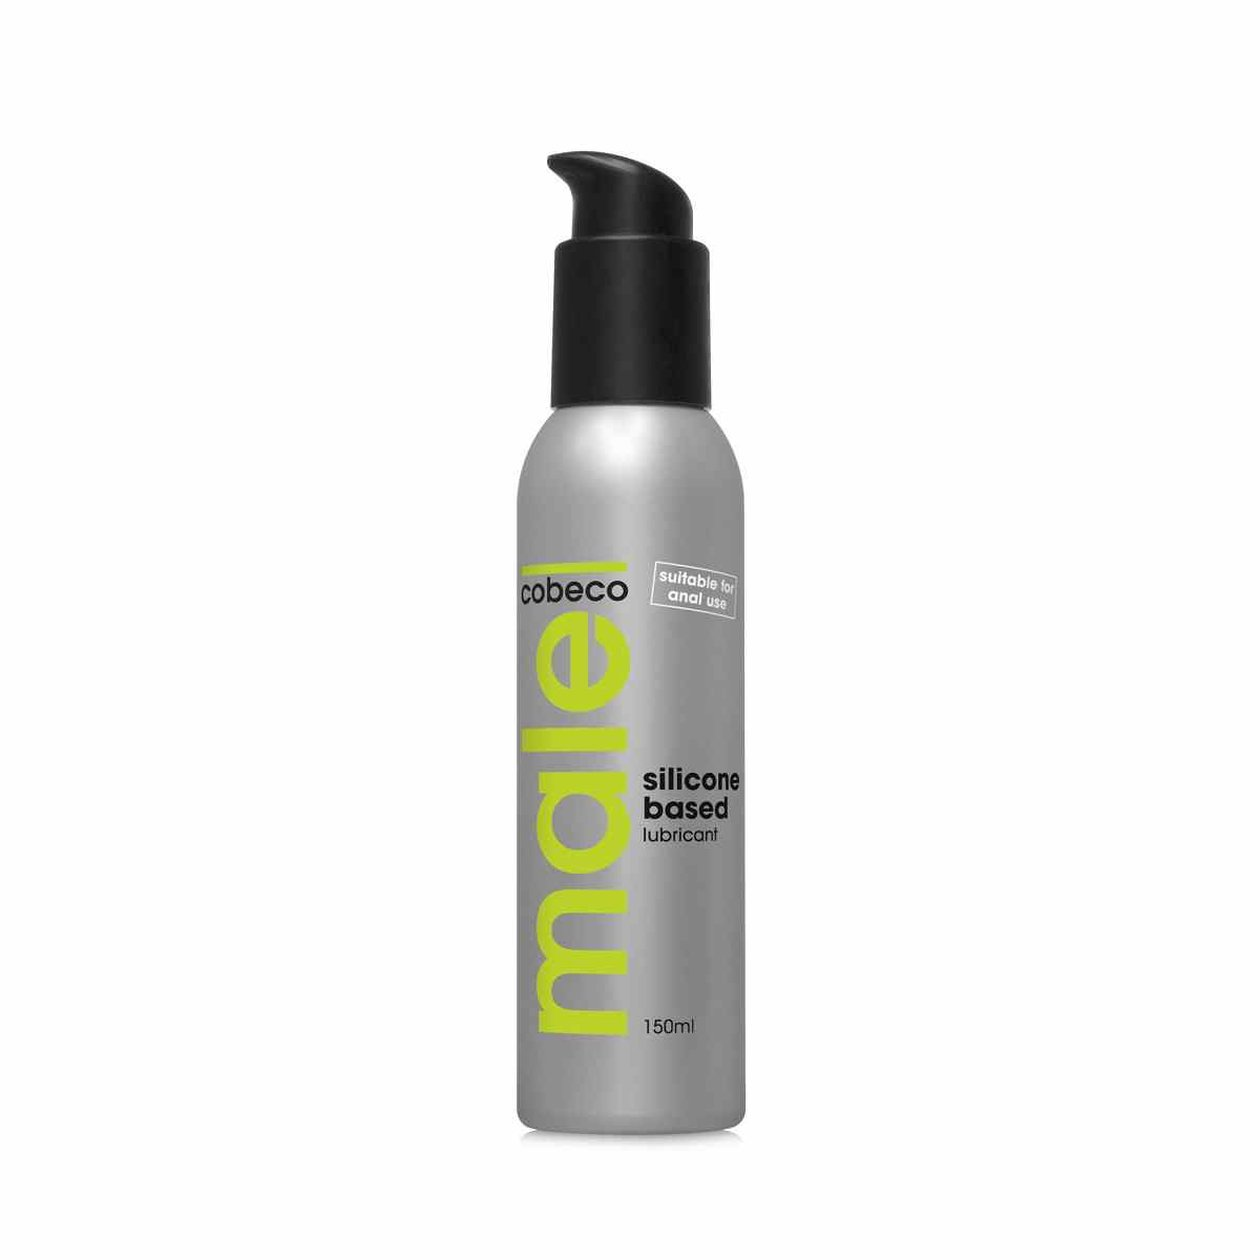 MALE Lubricant Silicone Based 150 ml